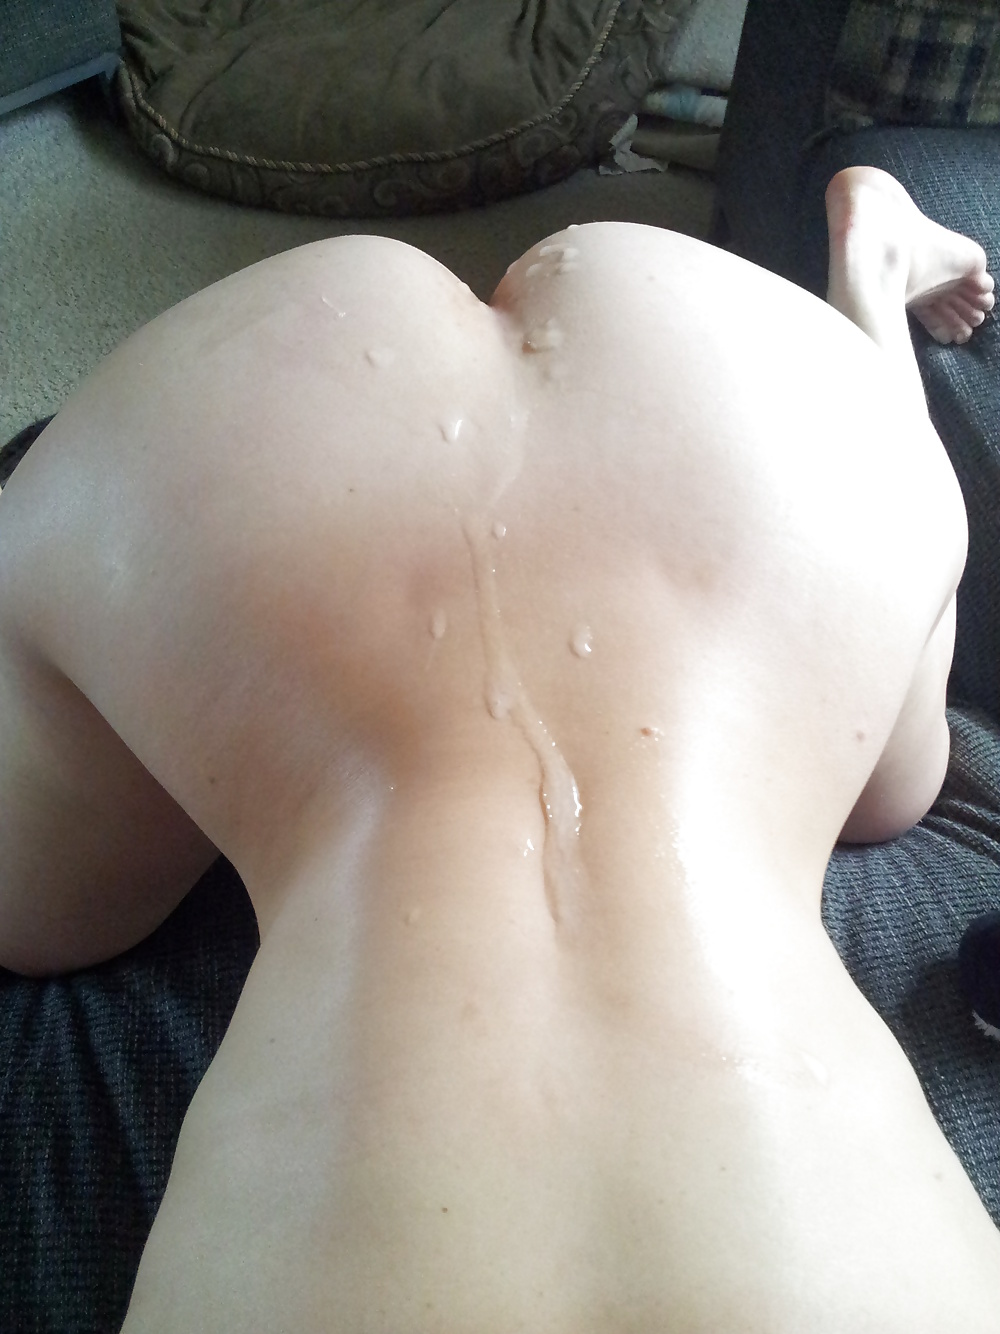 Cumming all over her back.